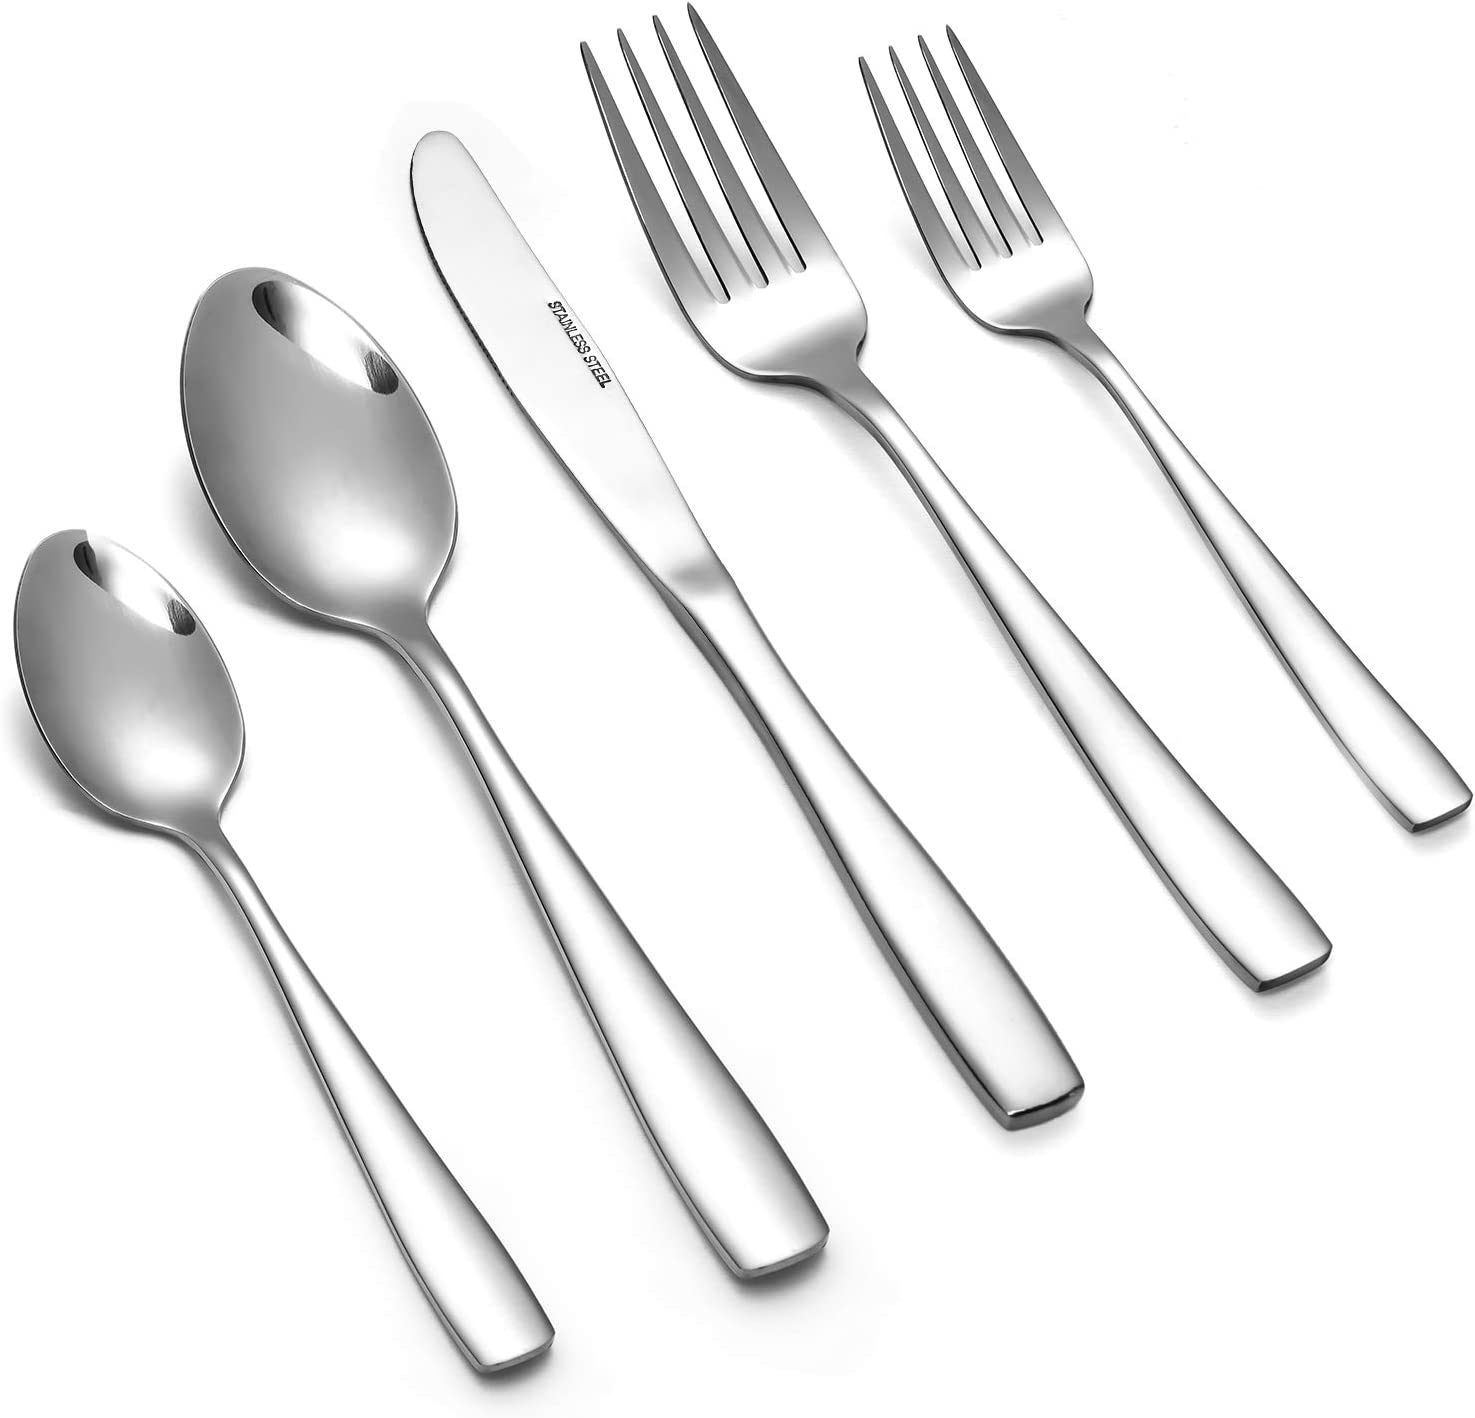 Eslite Stainless Steel Flatware Sets,40-piece,Service for 8